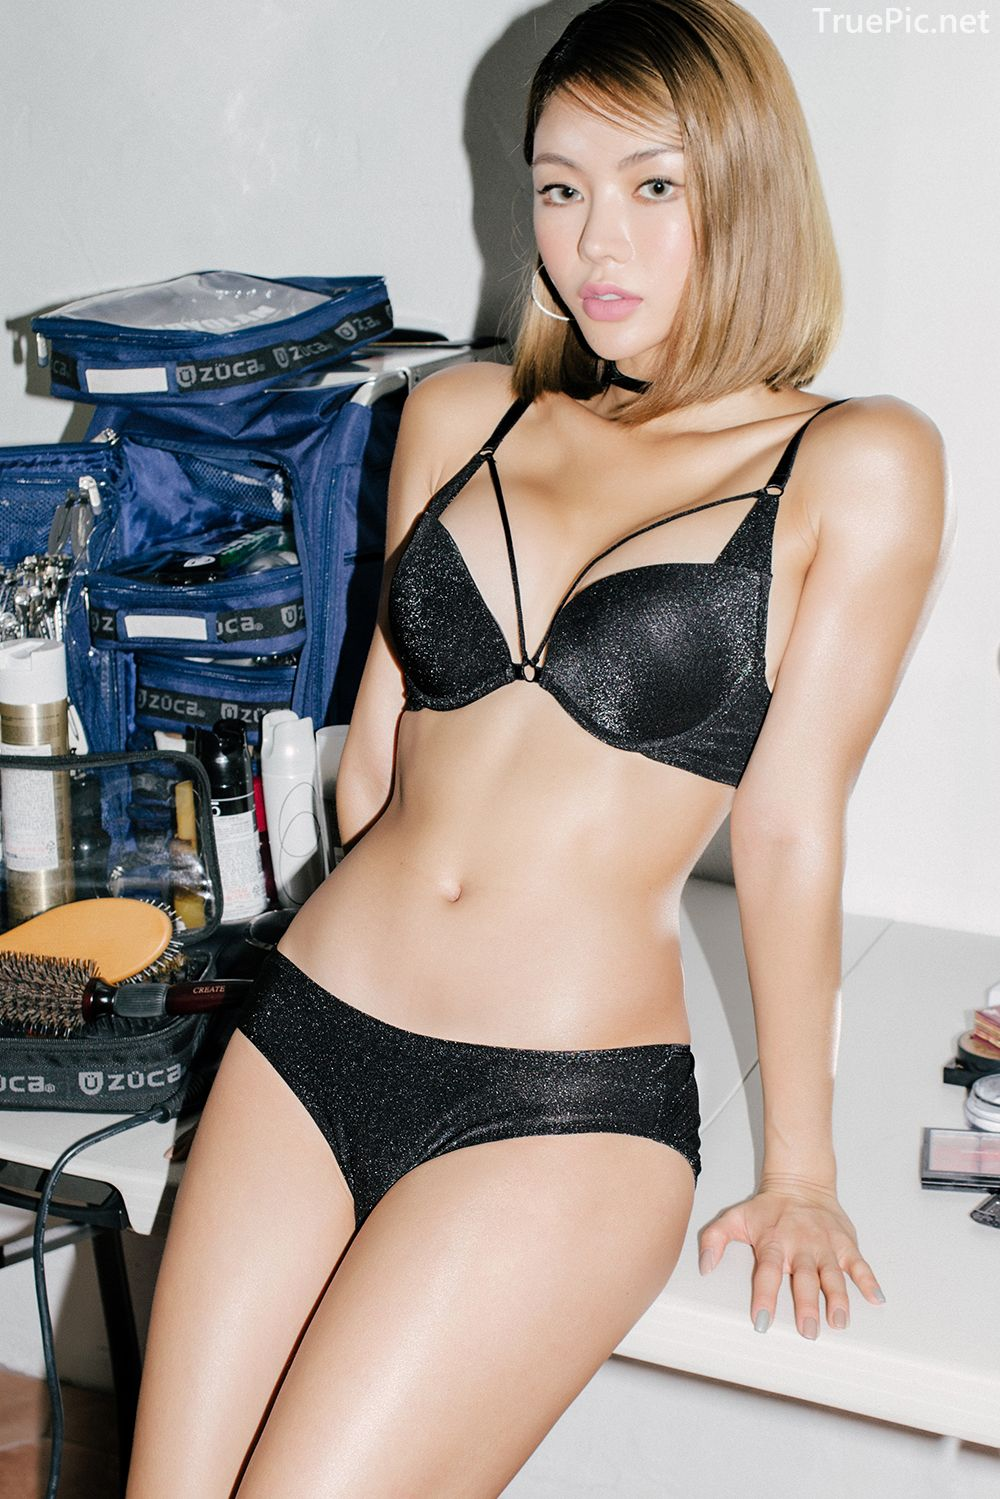 Korean model and fashion - An Seo Rin - Black Lingerie and Choker - Picture 6